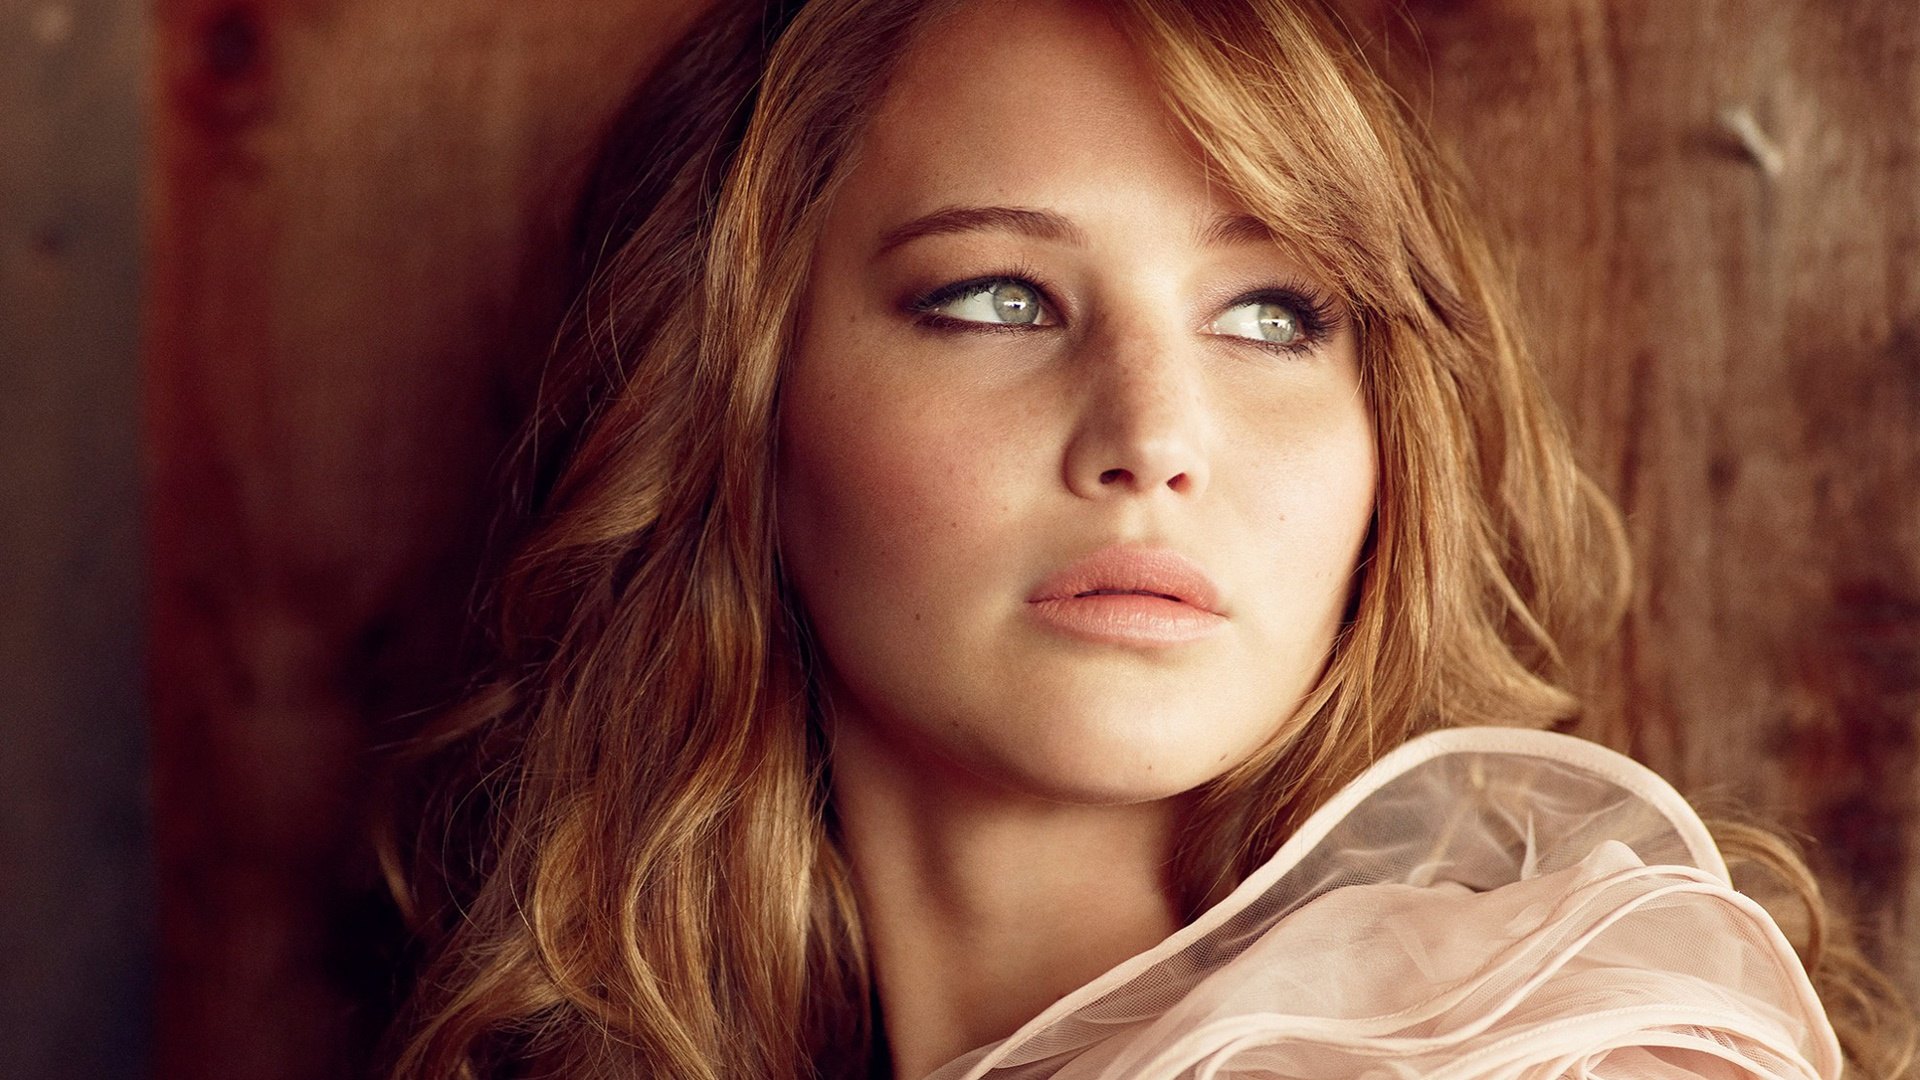 jennifer lawrence wallpapers hd A3